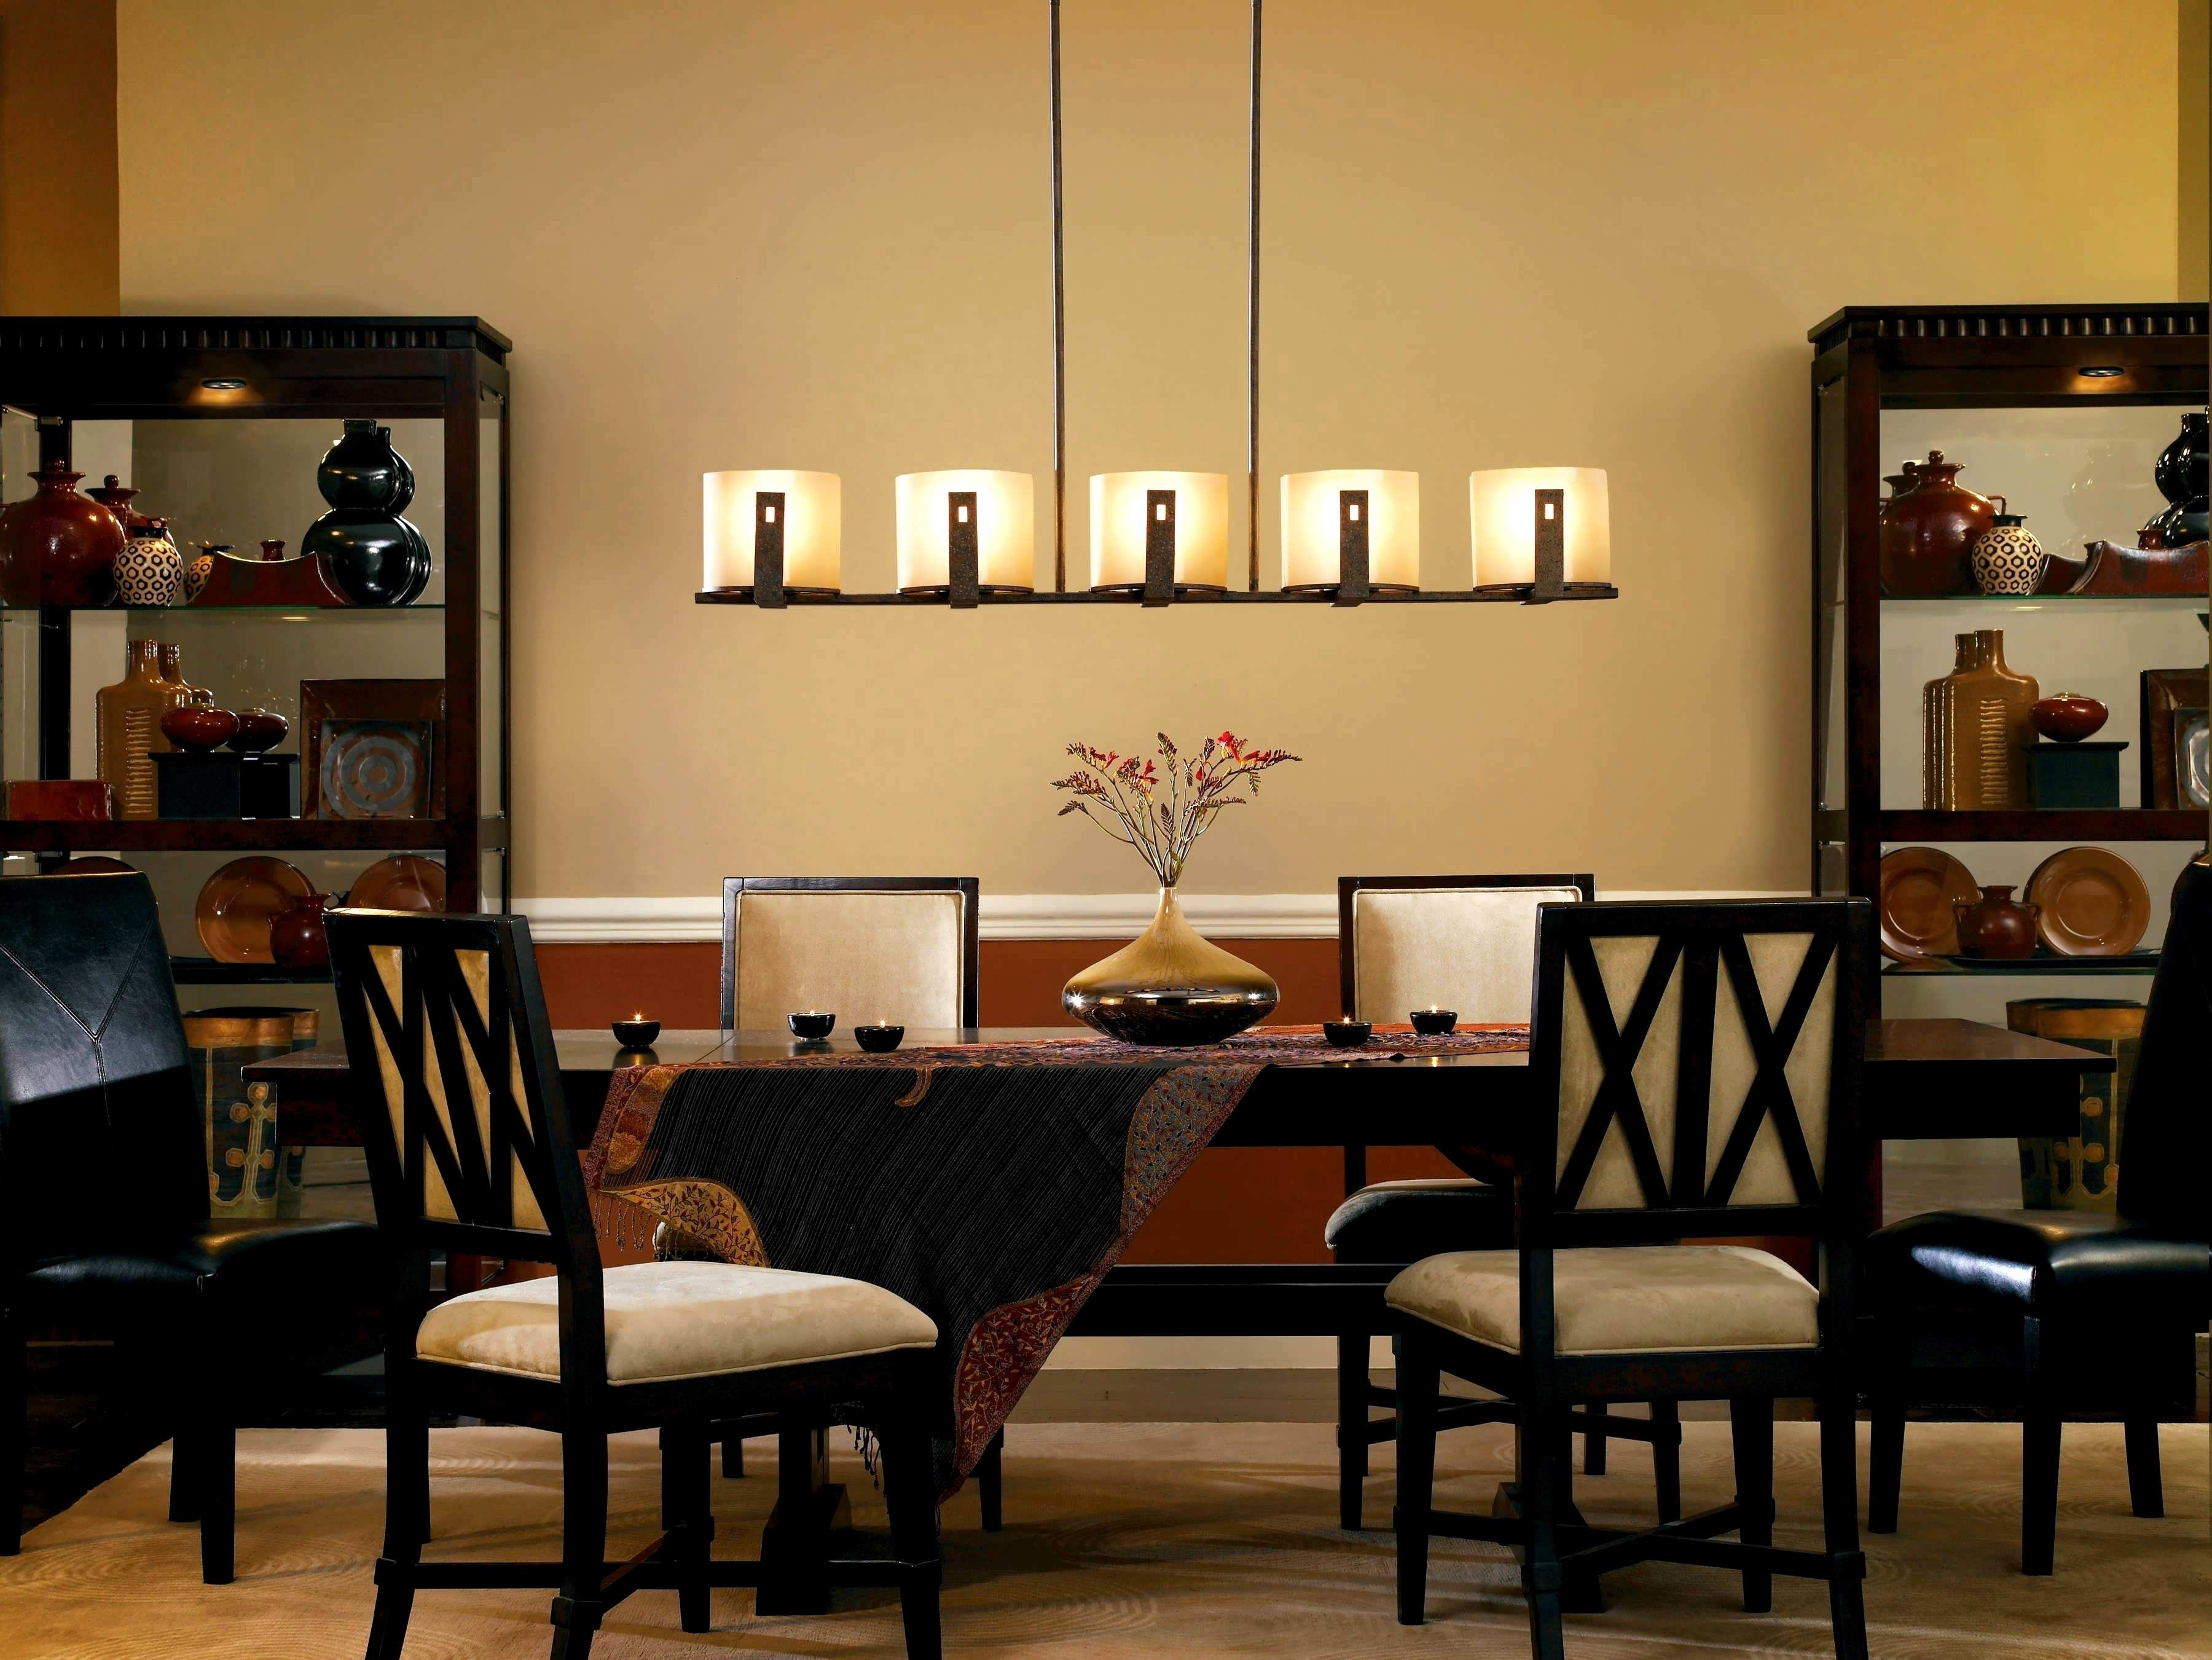 Lights For Dining Tables Pertaining To Favorite Fanciful Image Kitchen Dining Room Light Room Crystal Chandelier (View 9 of 25)